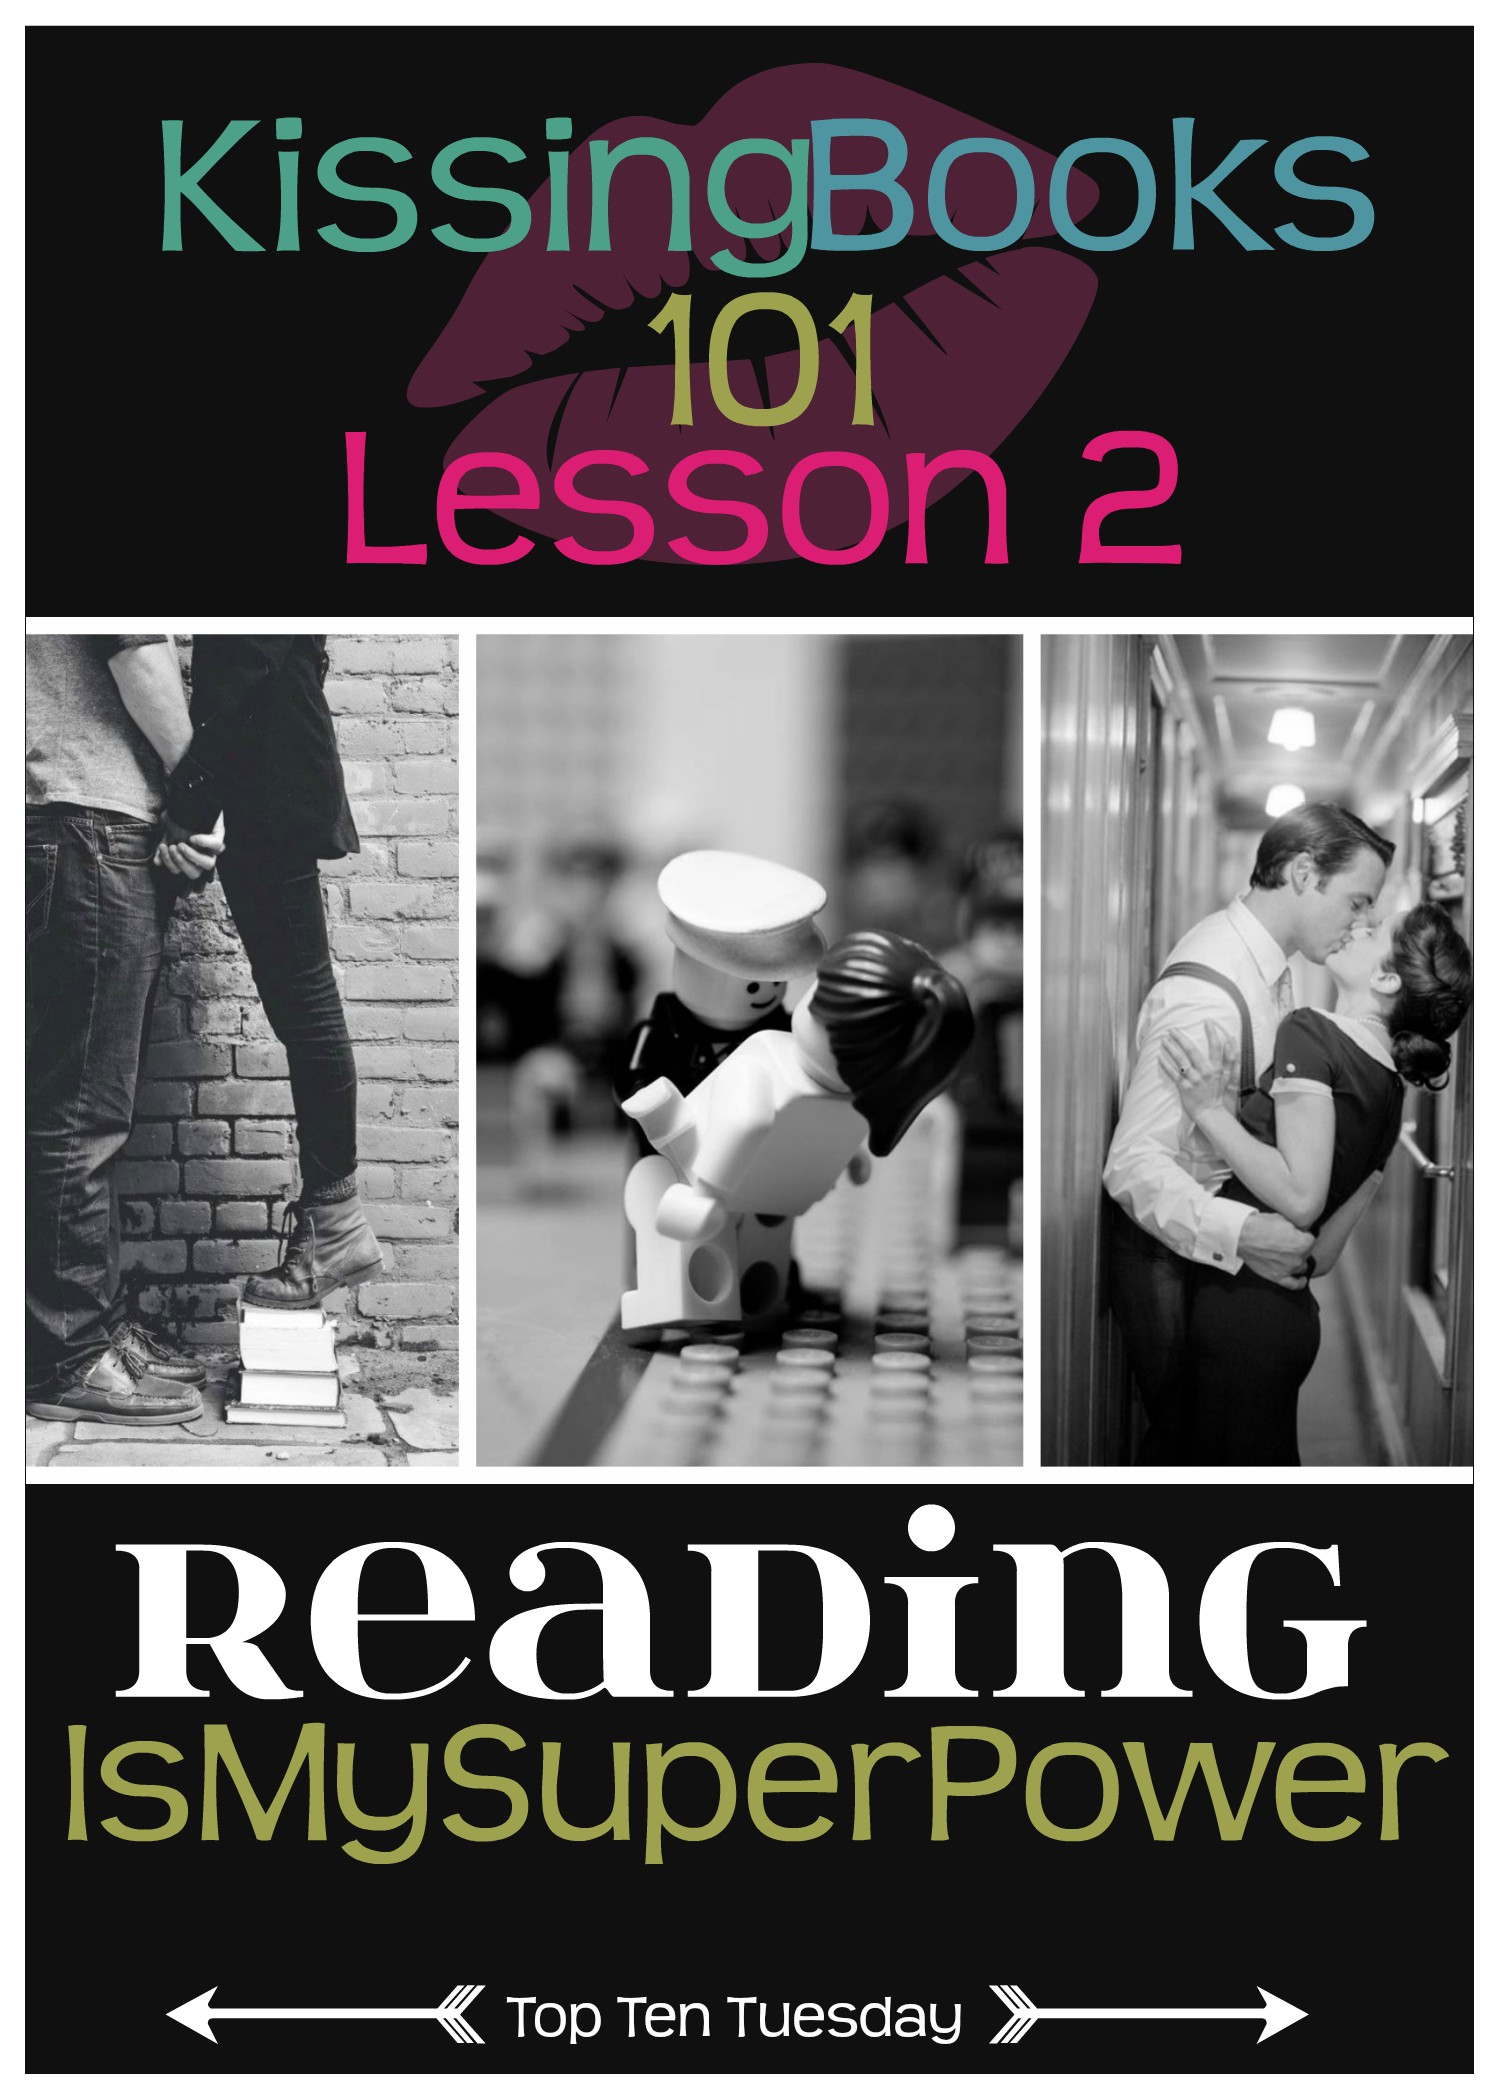 kissingbooks 101 lesson 2 title